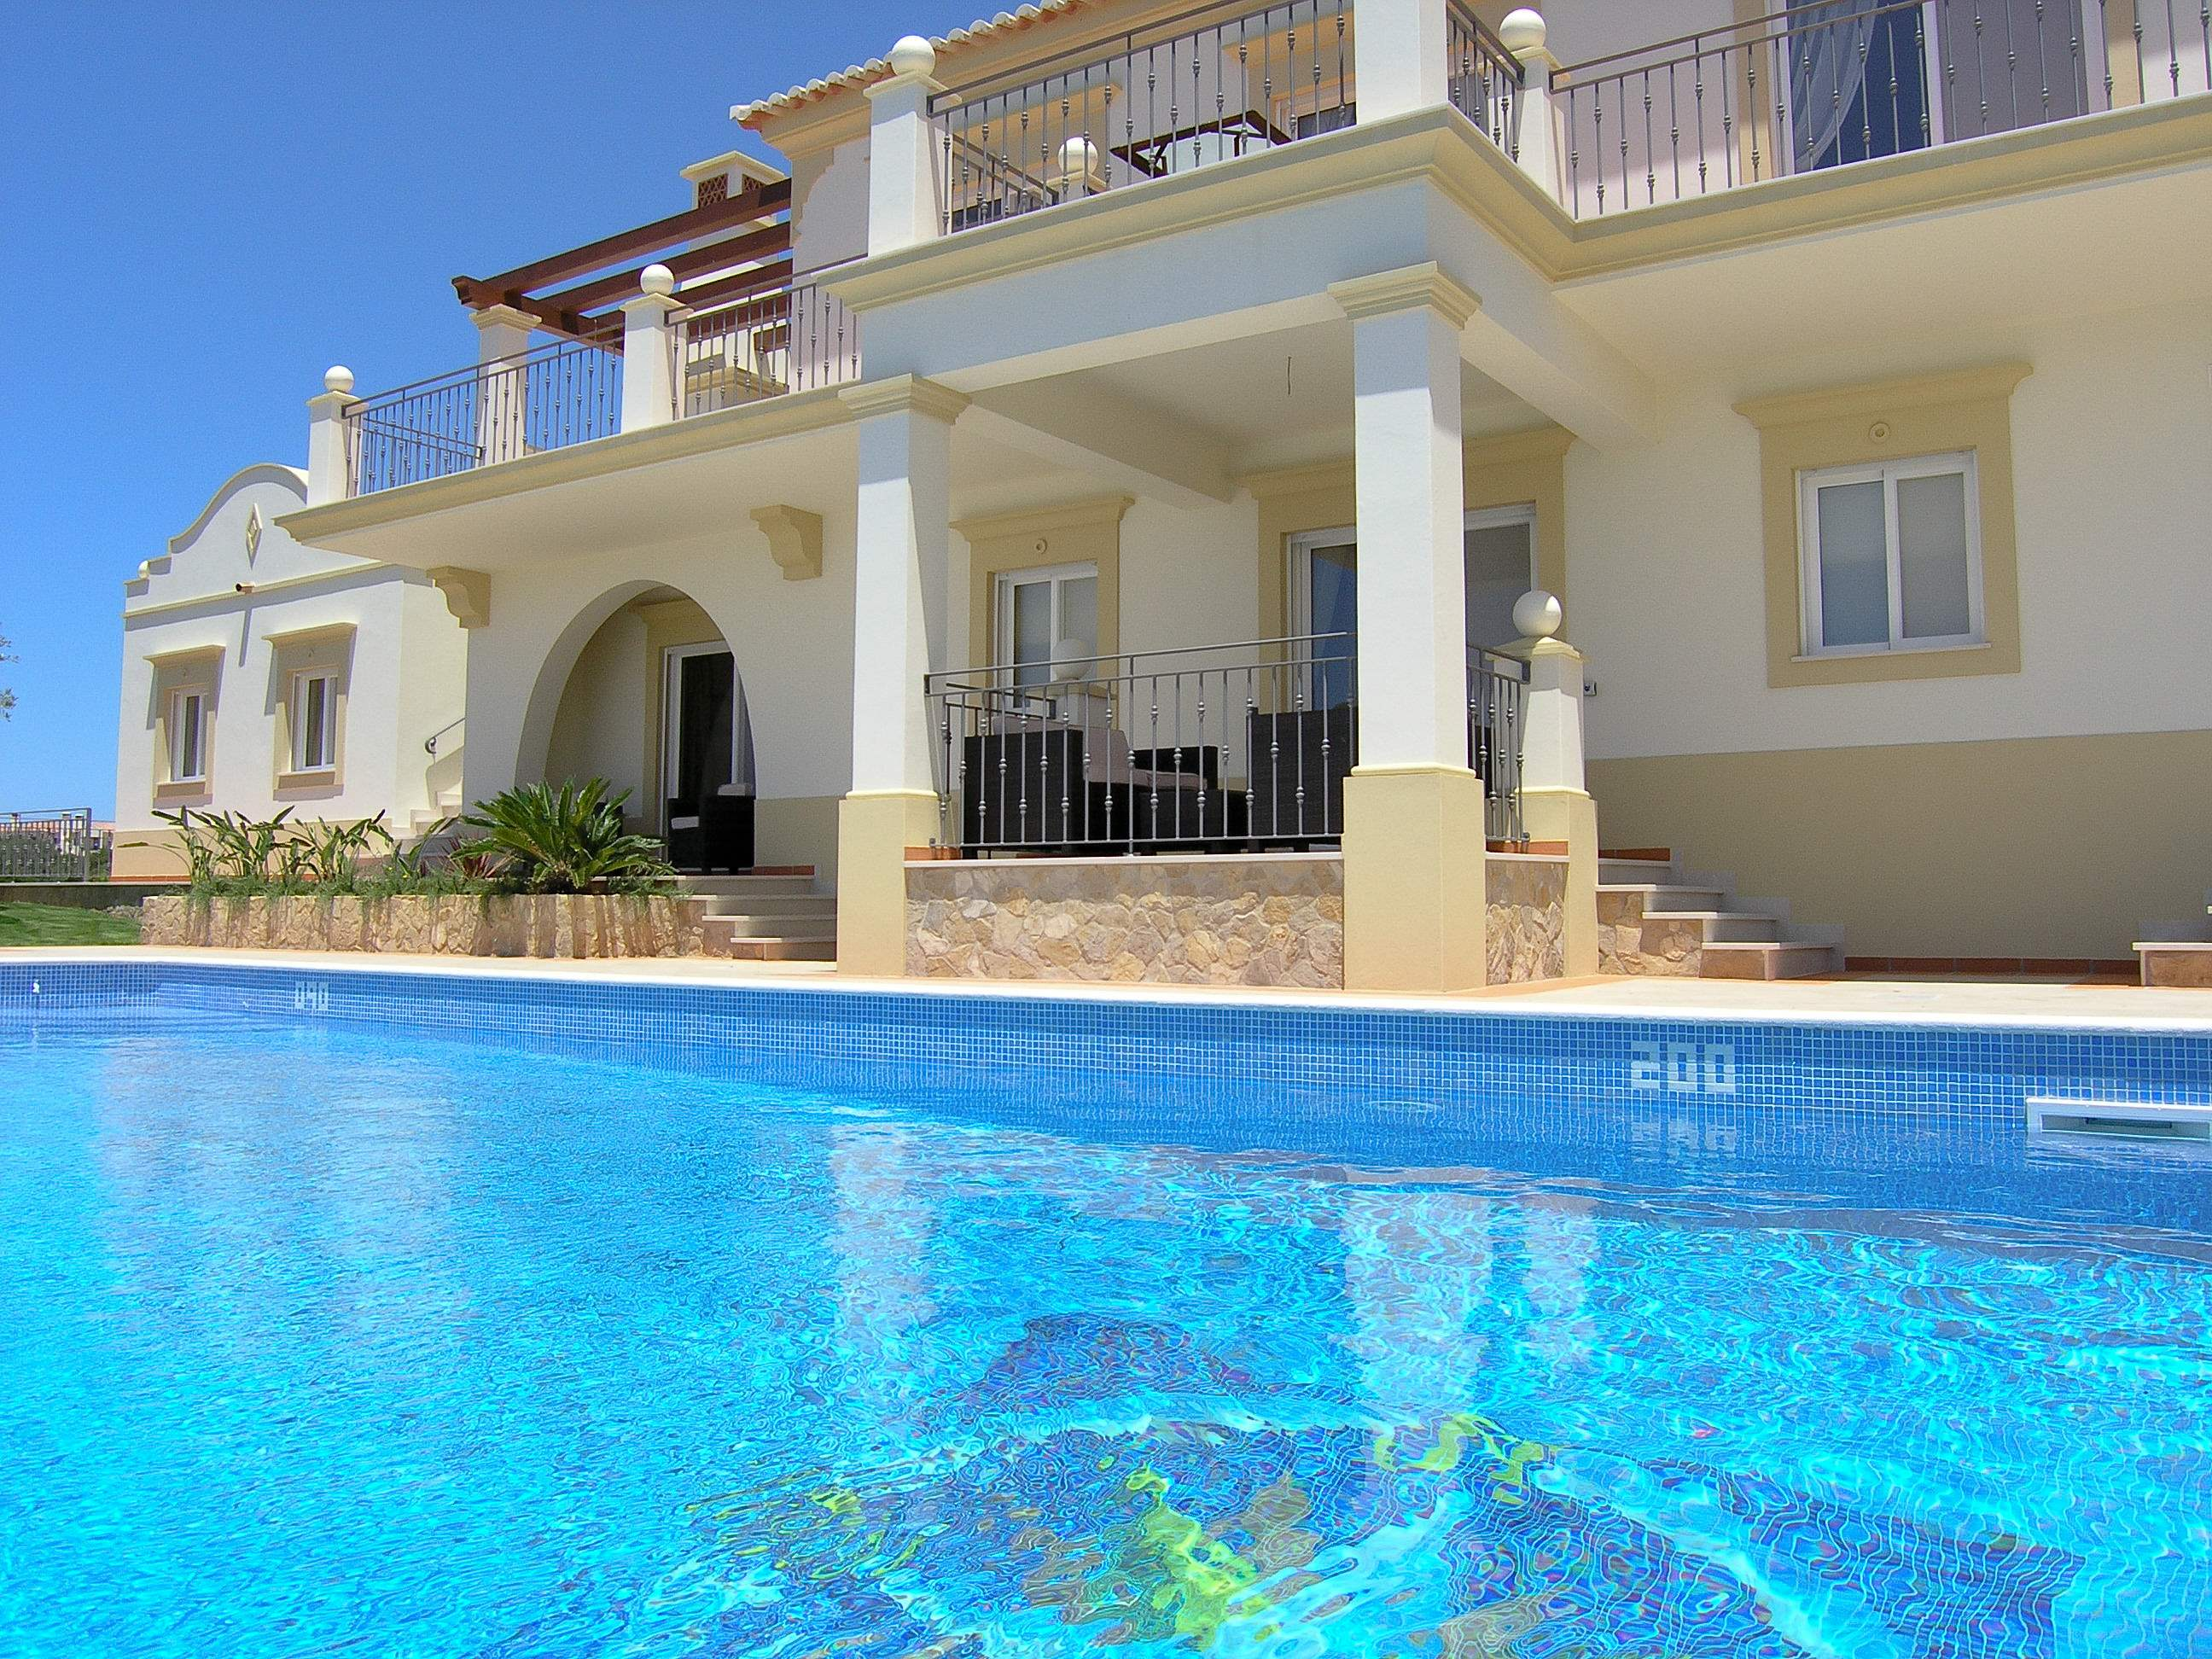 Martinhal Luxury Villa No.44, 3 bedroom villa in Martinhal Sagres, Algarve Photo #2